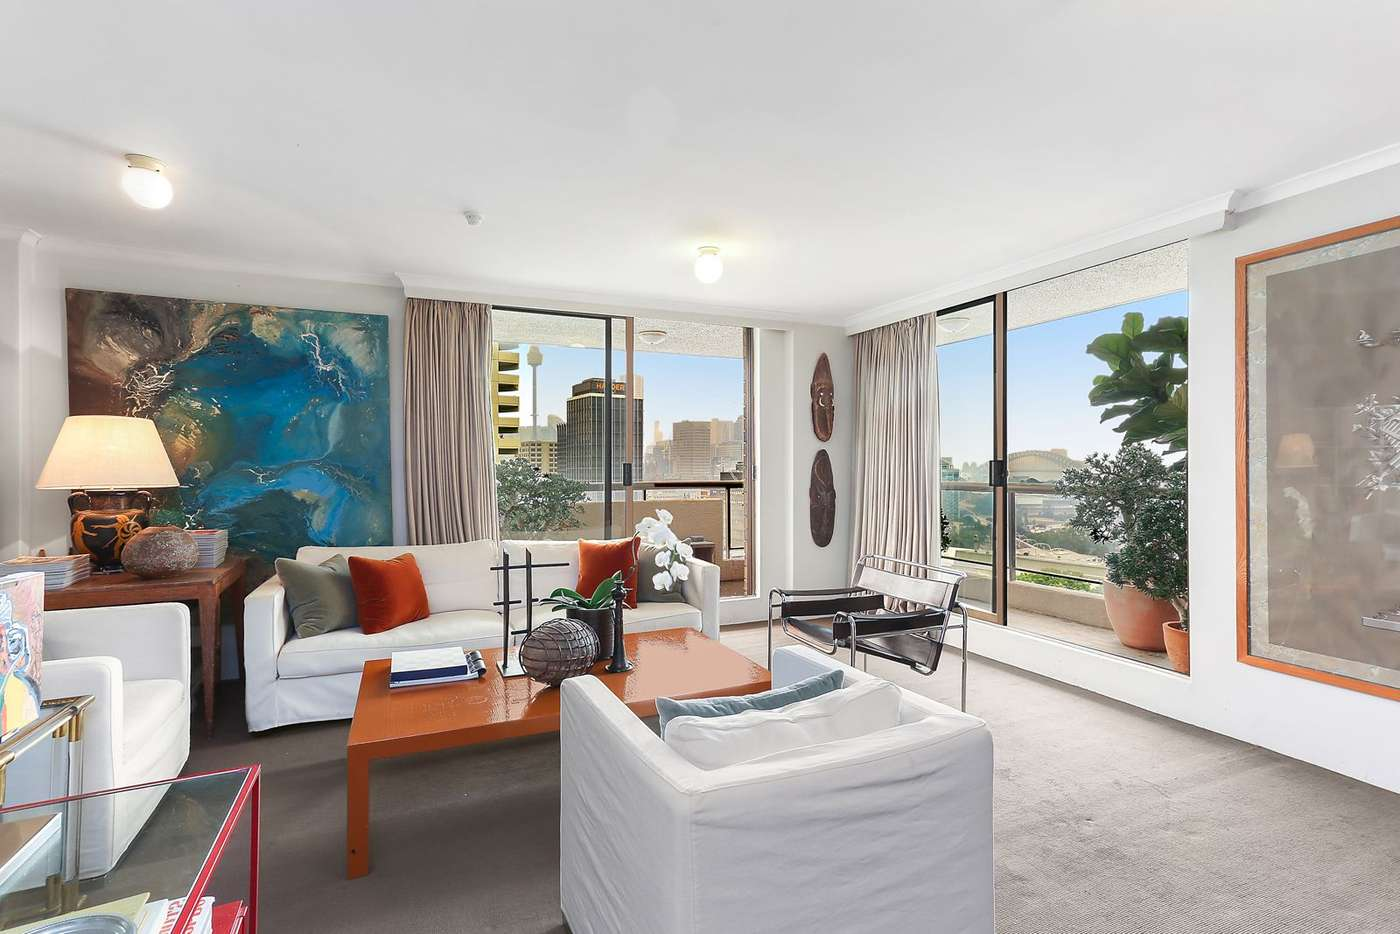 Main view of Homely apartment listing, 36/5-15 Farrell Avenue, Darlinghurst, NSW 2010